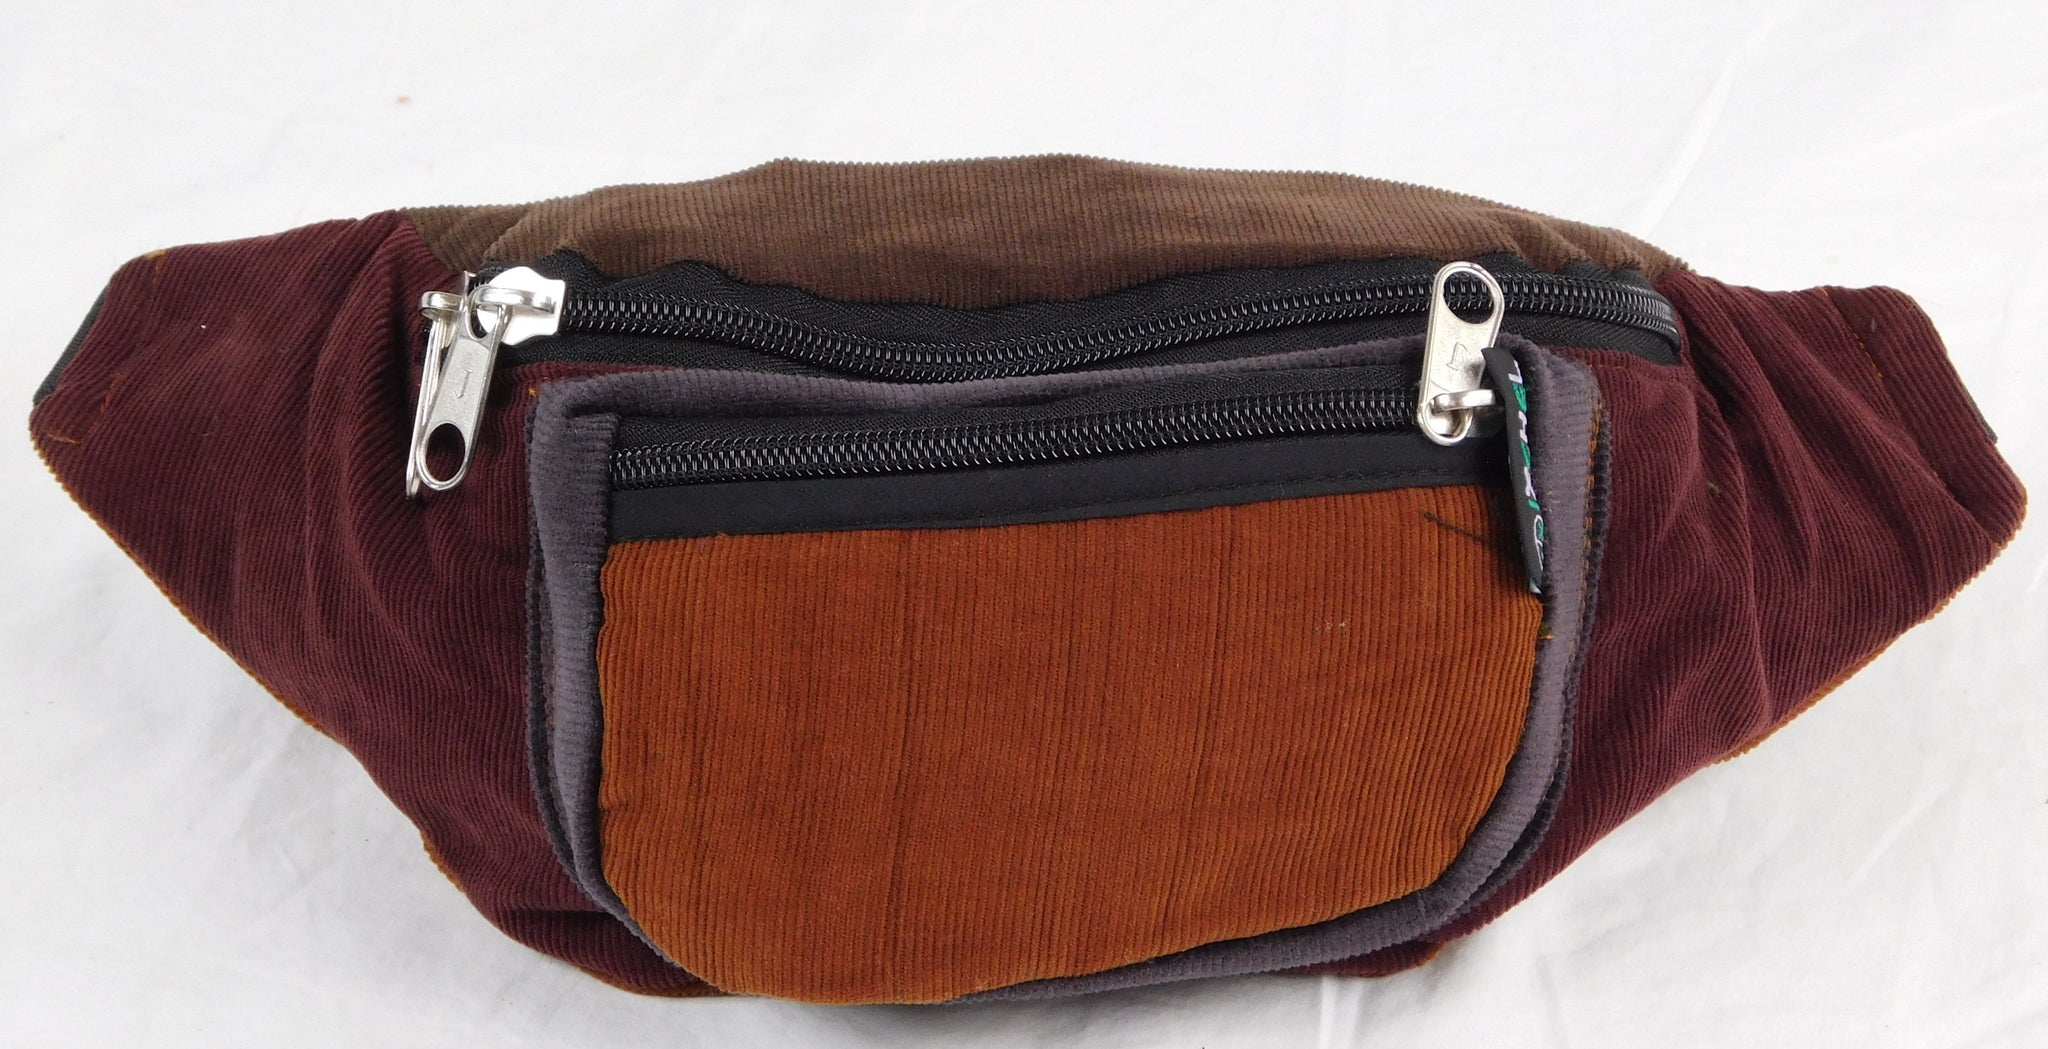 Extra large 3 pocket waist pack in corduroy